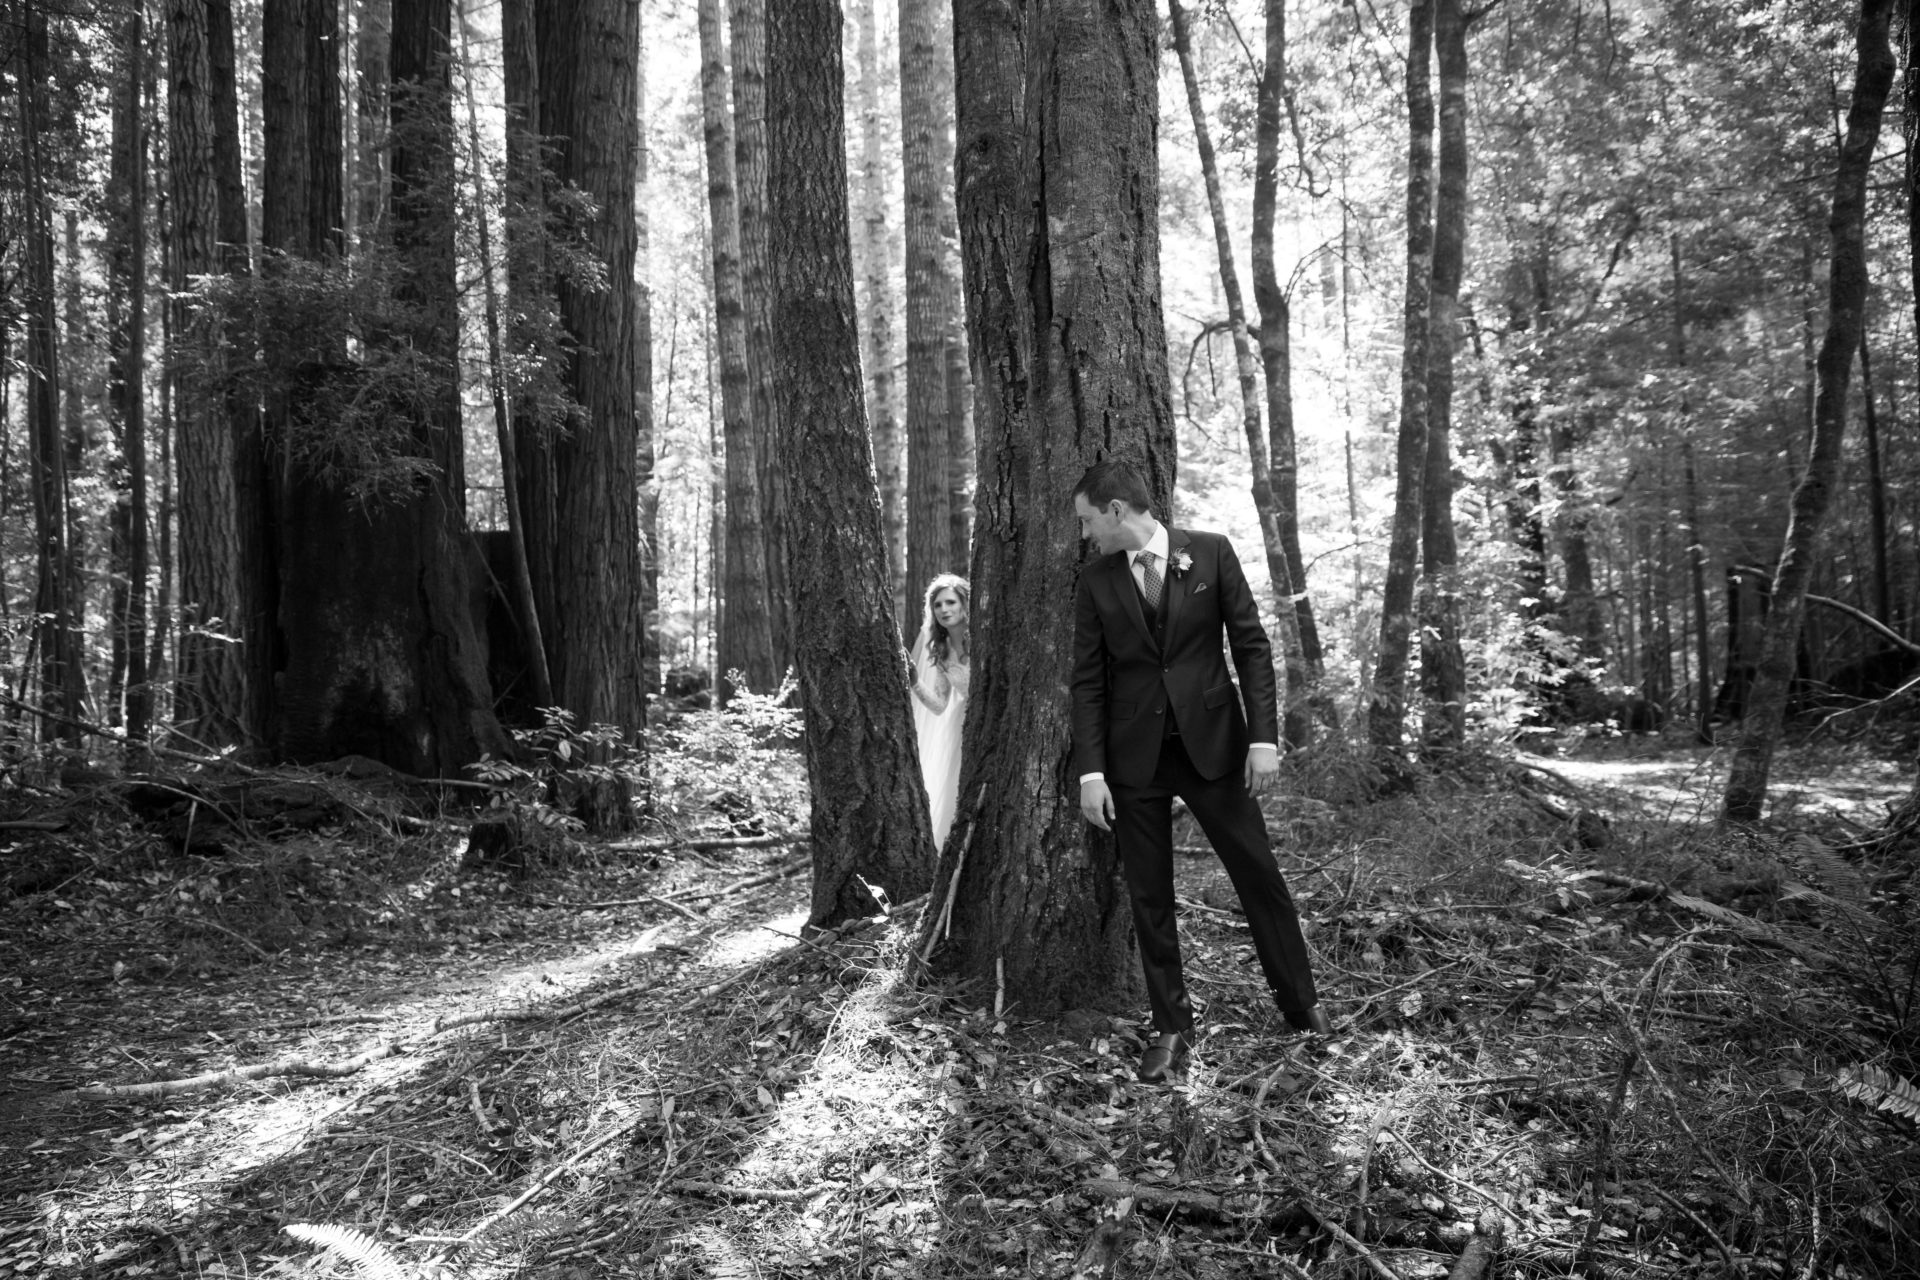 Reveal, first look in the forest, near Mendocino Woodlands.